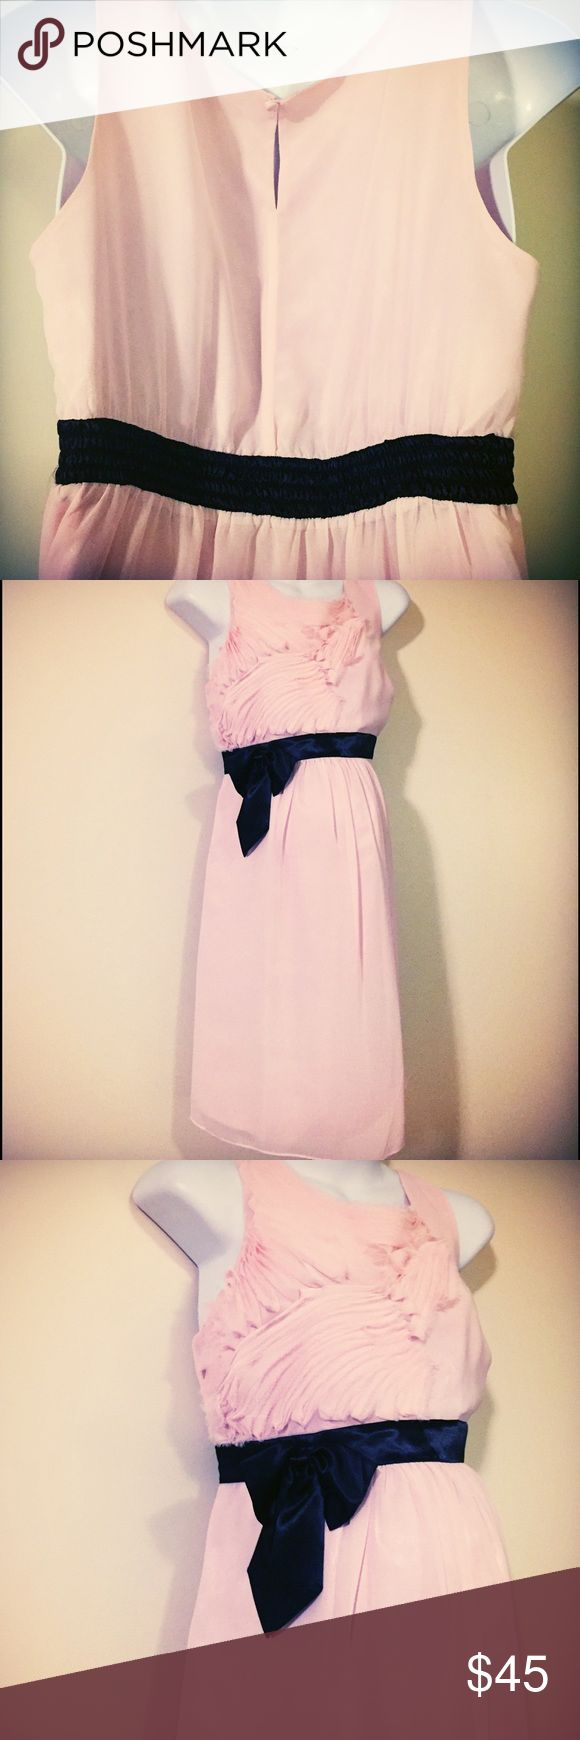 Formal pink maternity dress size large Excellent condition Gorgeous maternity dress size large by Pea in the pod. 100% polyester machine wash cold tumble dry low. Beautiful soft pink color with stretchy waist. Side zipper and satin layer underneath. Perfect for a baby shower or wedding! Price firm unless bundled. A Pea in the Pod Dresses